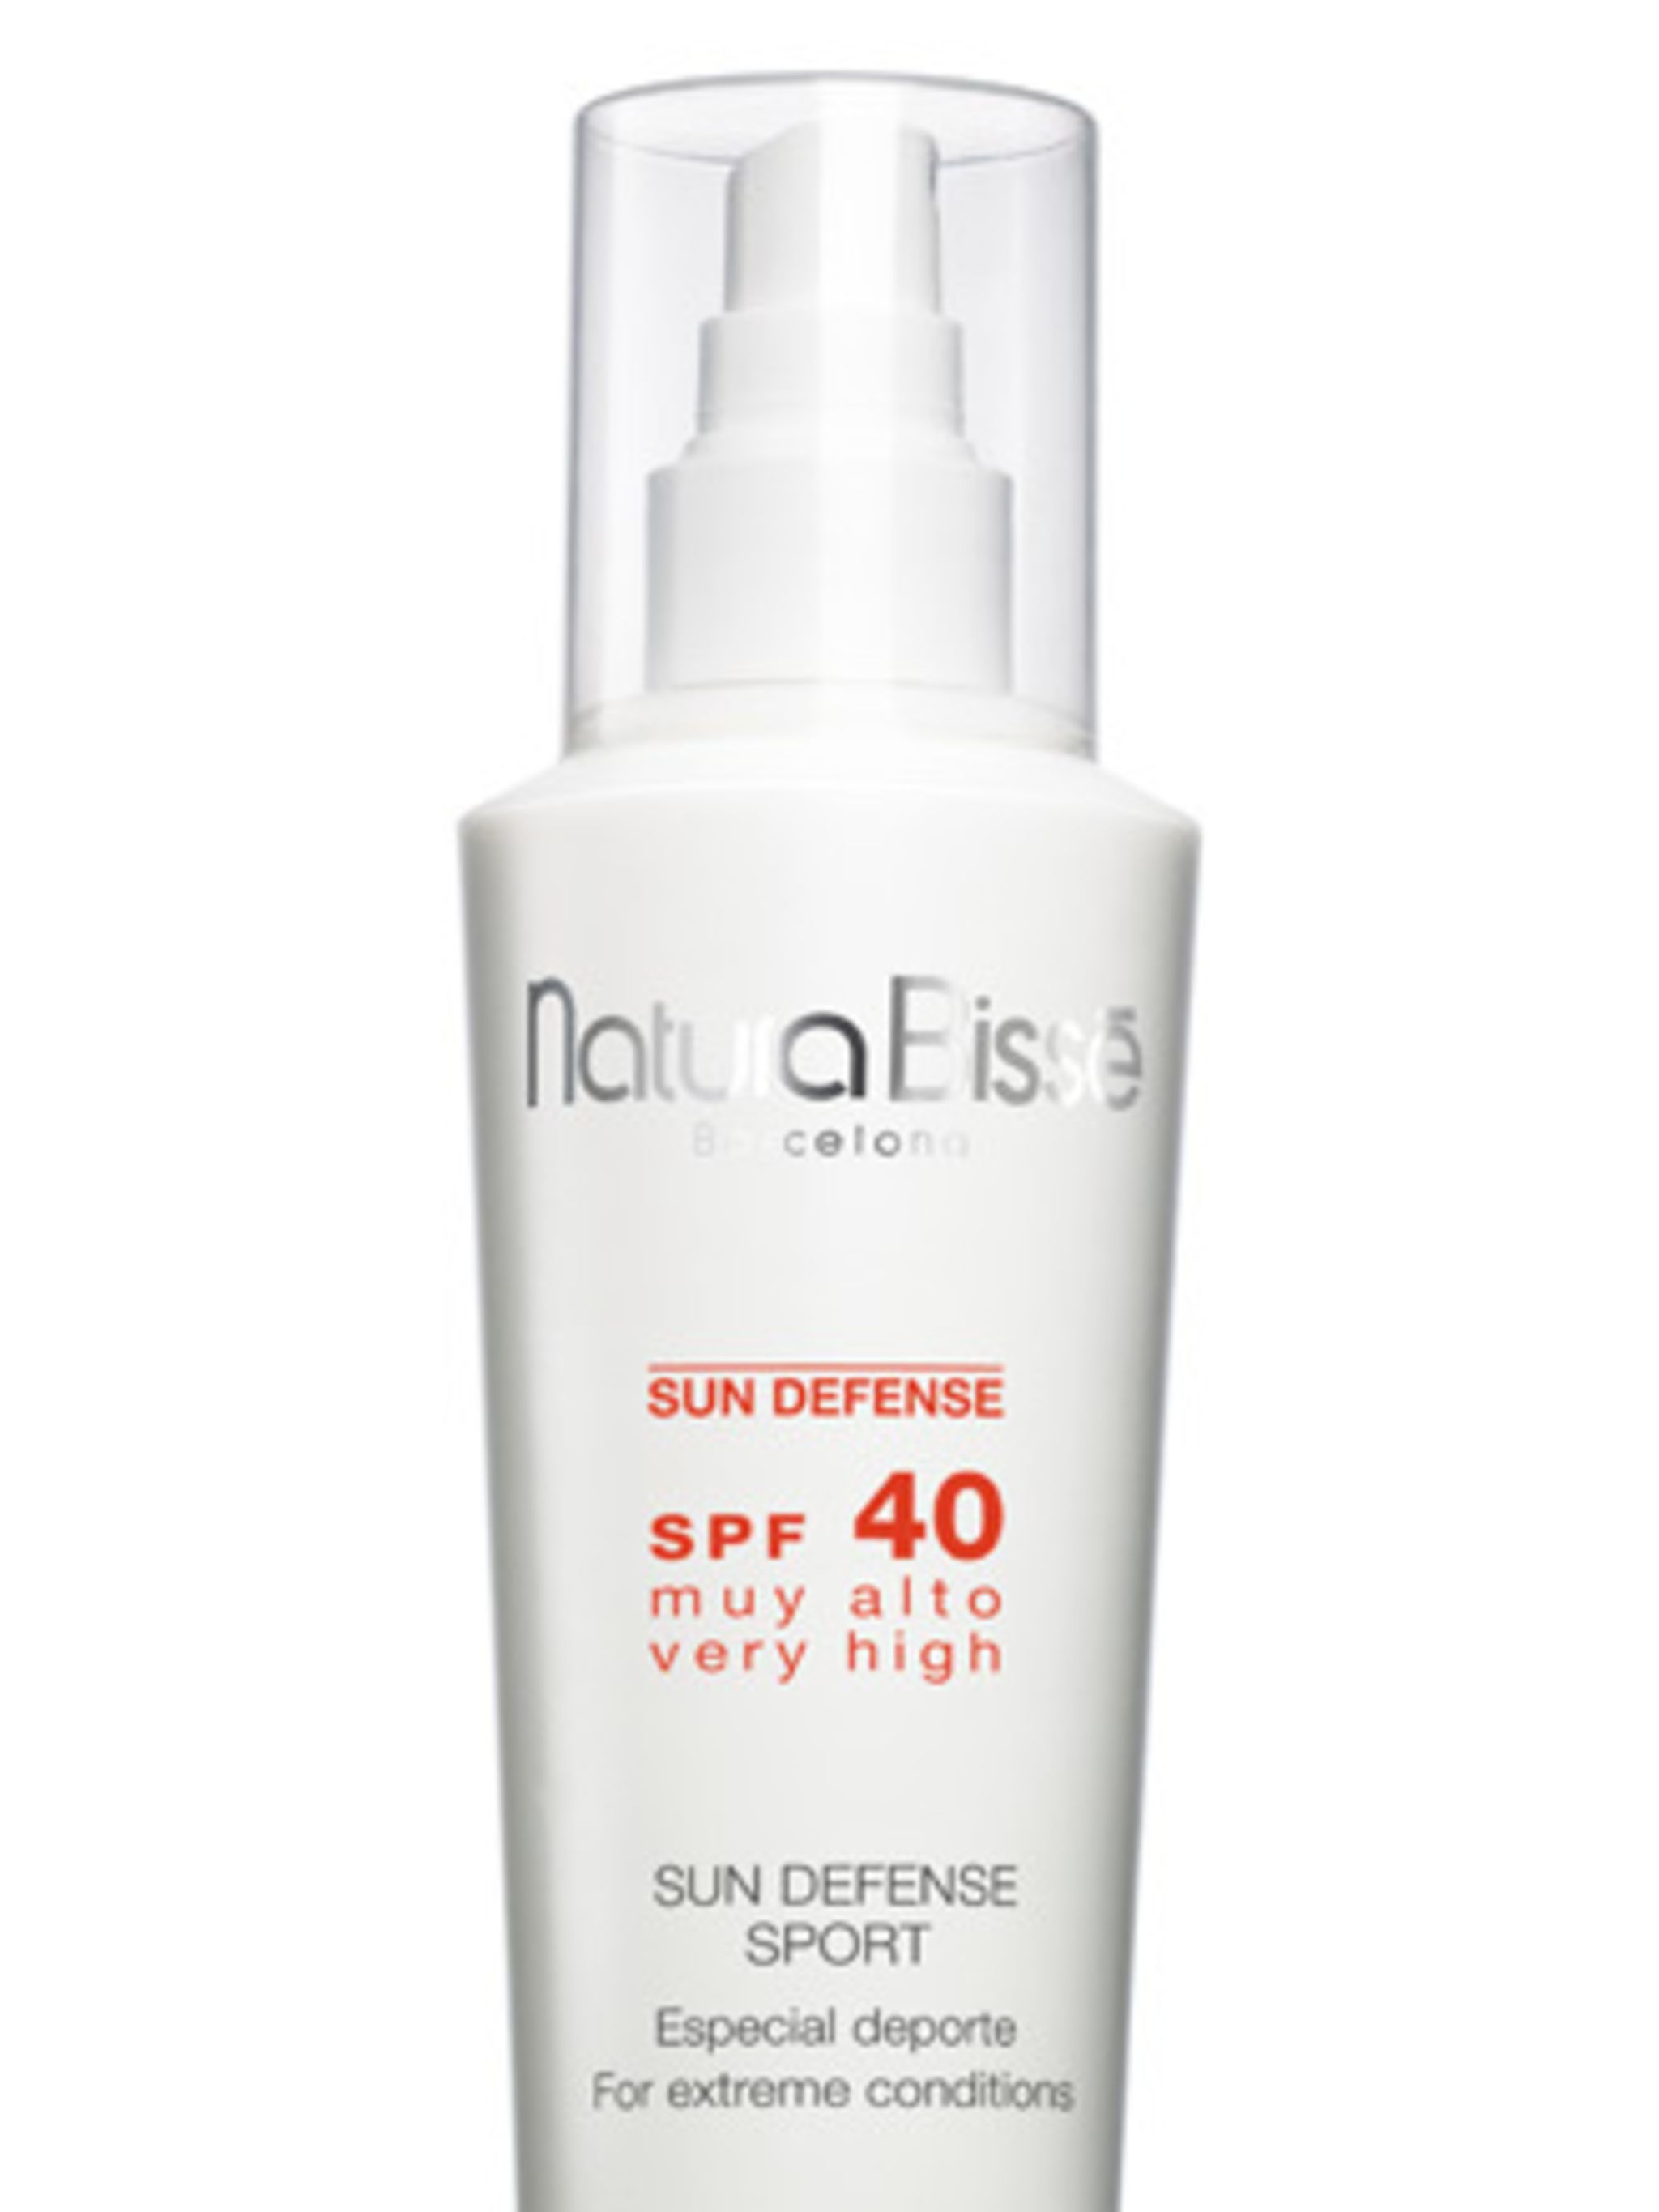 <p>If you're off to the slopes, you need sun protection. The higher the altitude the higher the ultra violet levels, plus the sun reflects off the snow; both factors can increase your chances of sun damage. This high factor sun lotion protects from both U